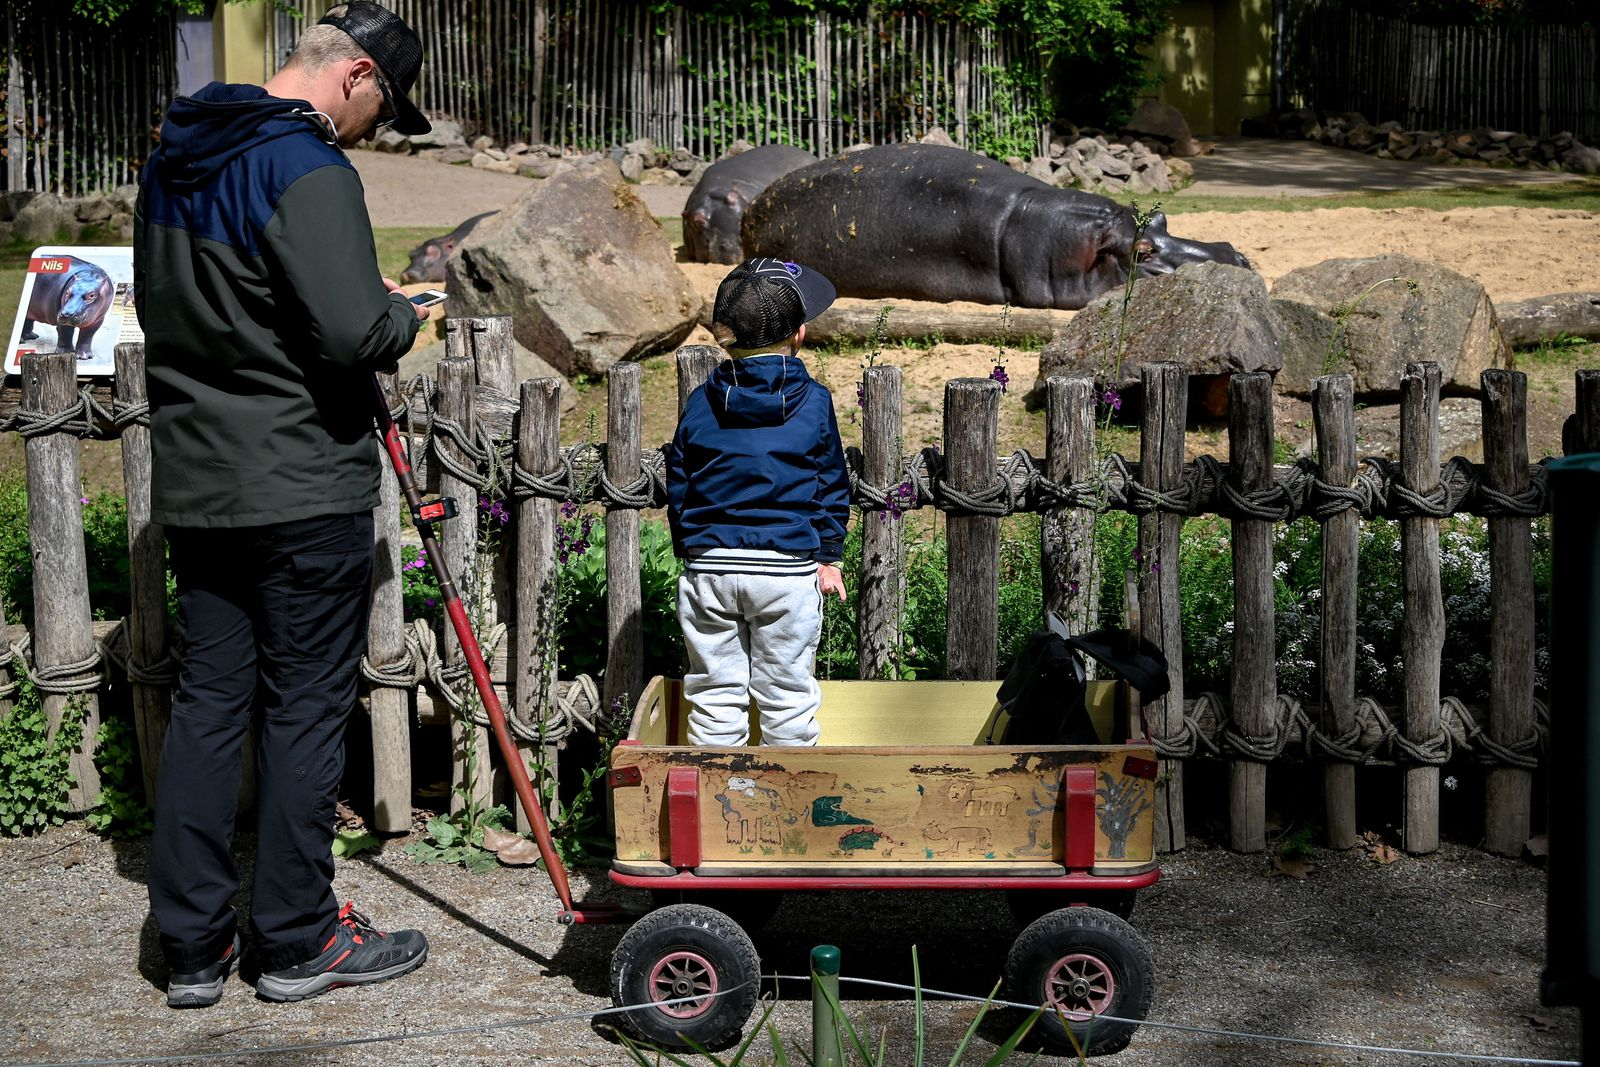 Cologne Zoo reopens after easing coronavirus lockdown, Germany - 05 May 2020